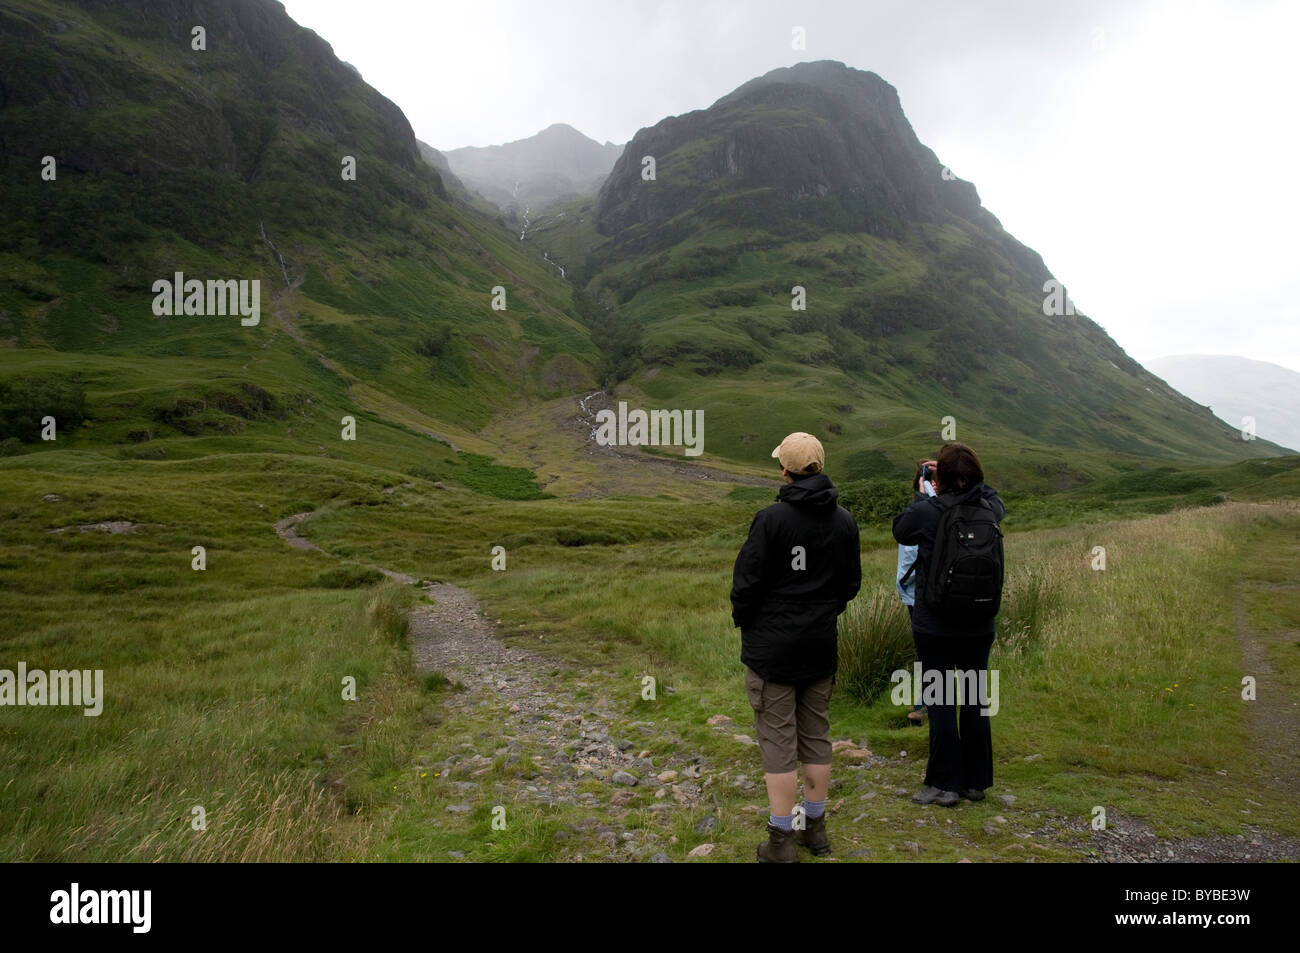 Group of walkers standing on a mountain path looking towards a mountain pass and taking a photo - Stock Image